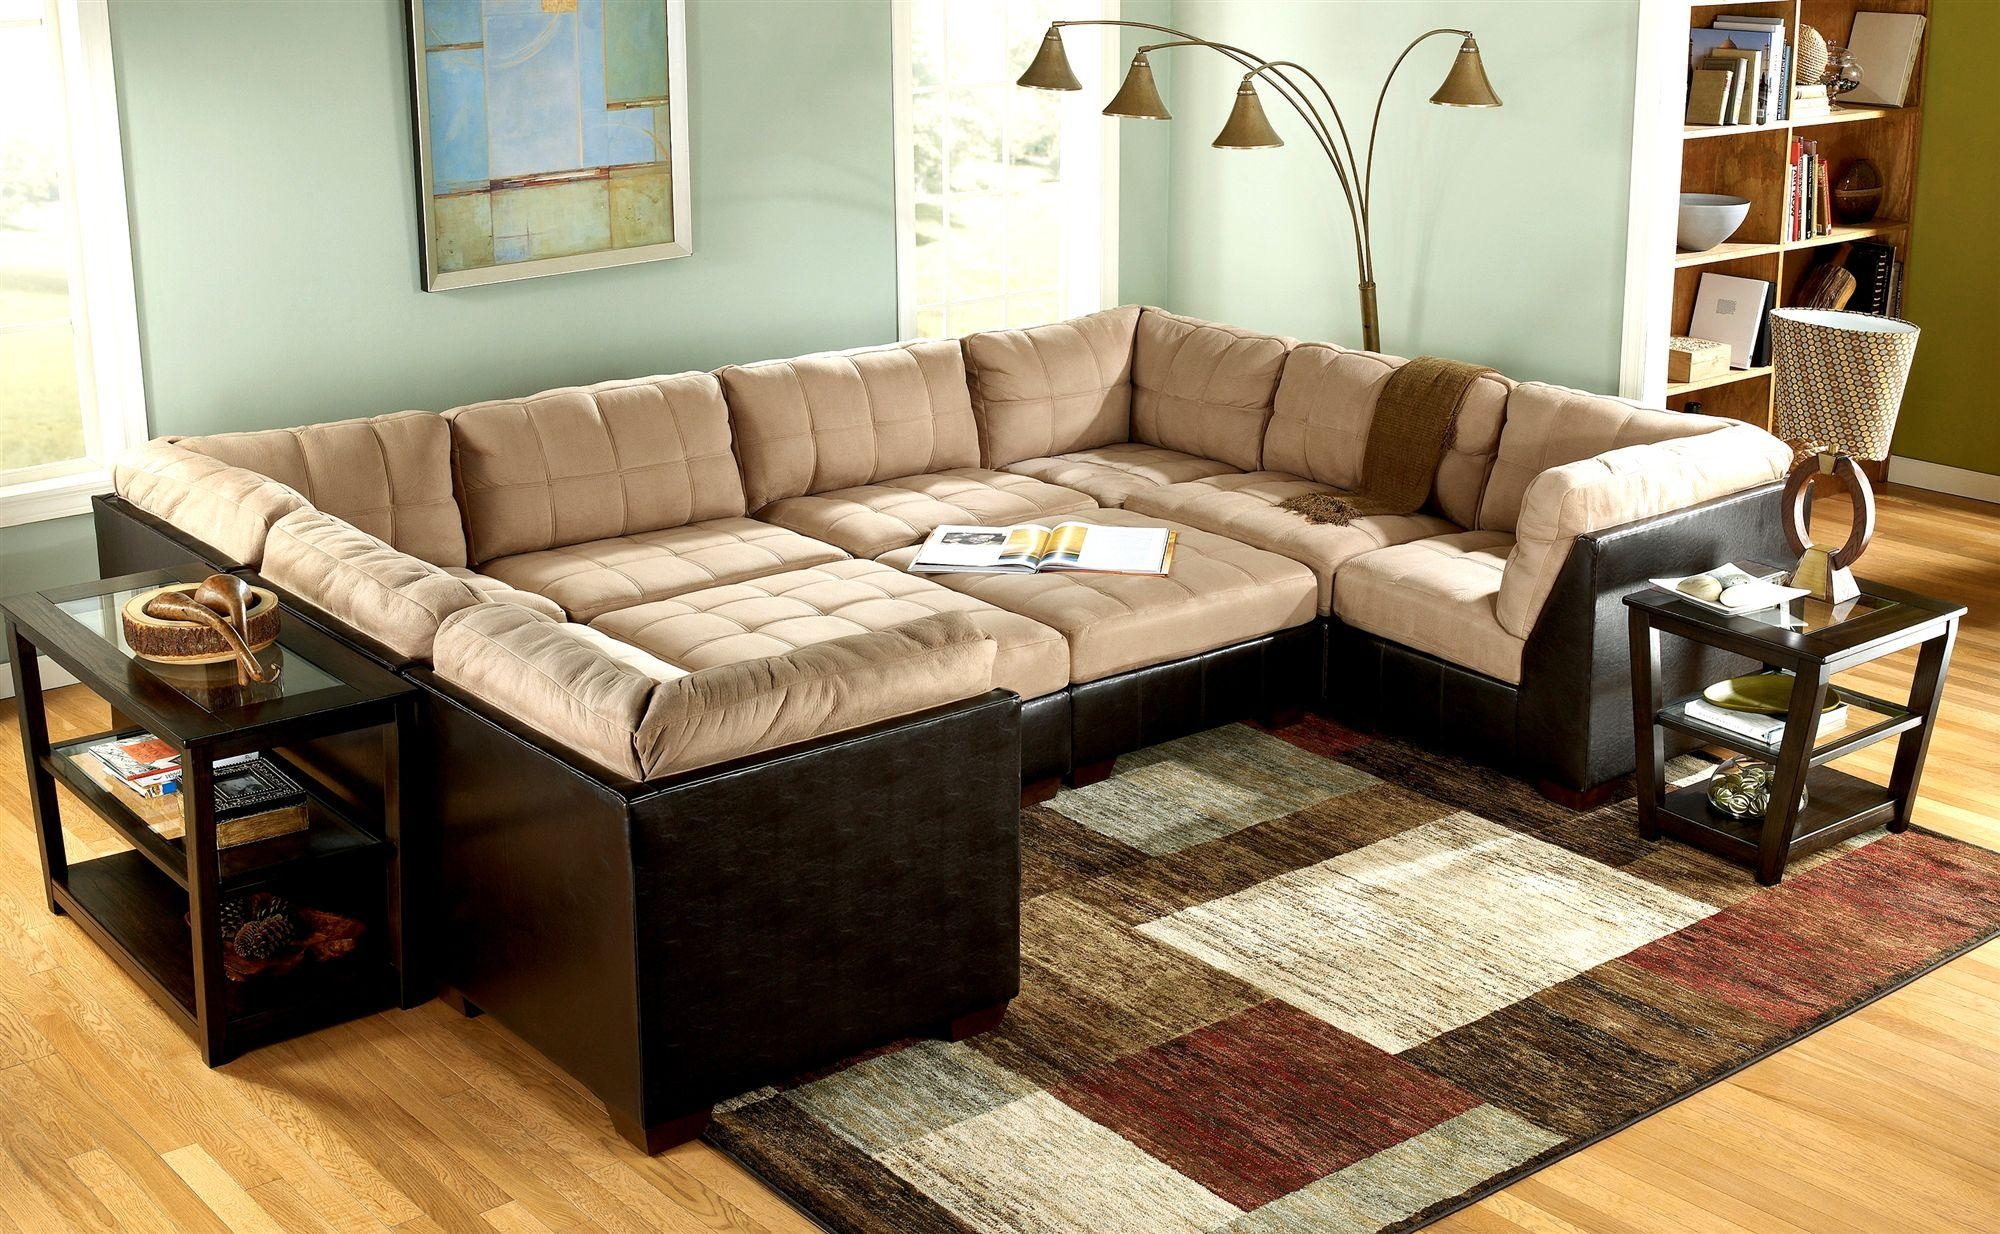 Furniture: Cool Sectional Couch Design With Rugs And Floor Lamp Within Floor Lamp For Sectional Couch (View 4 of 15)